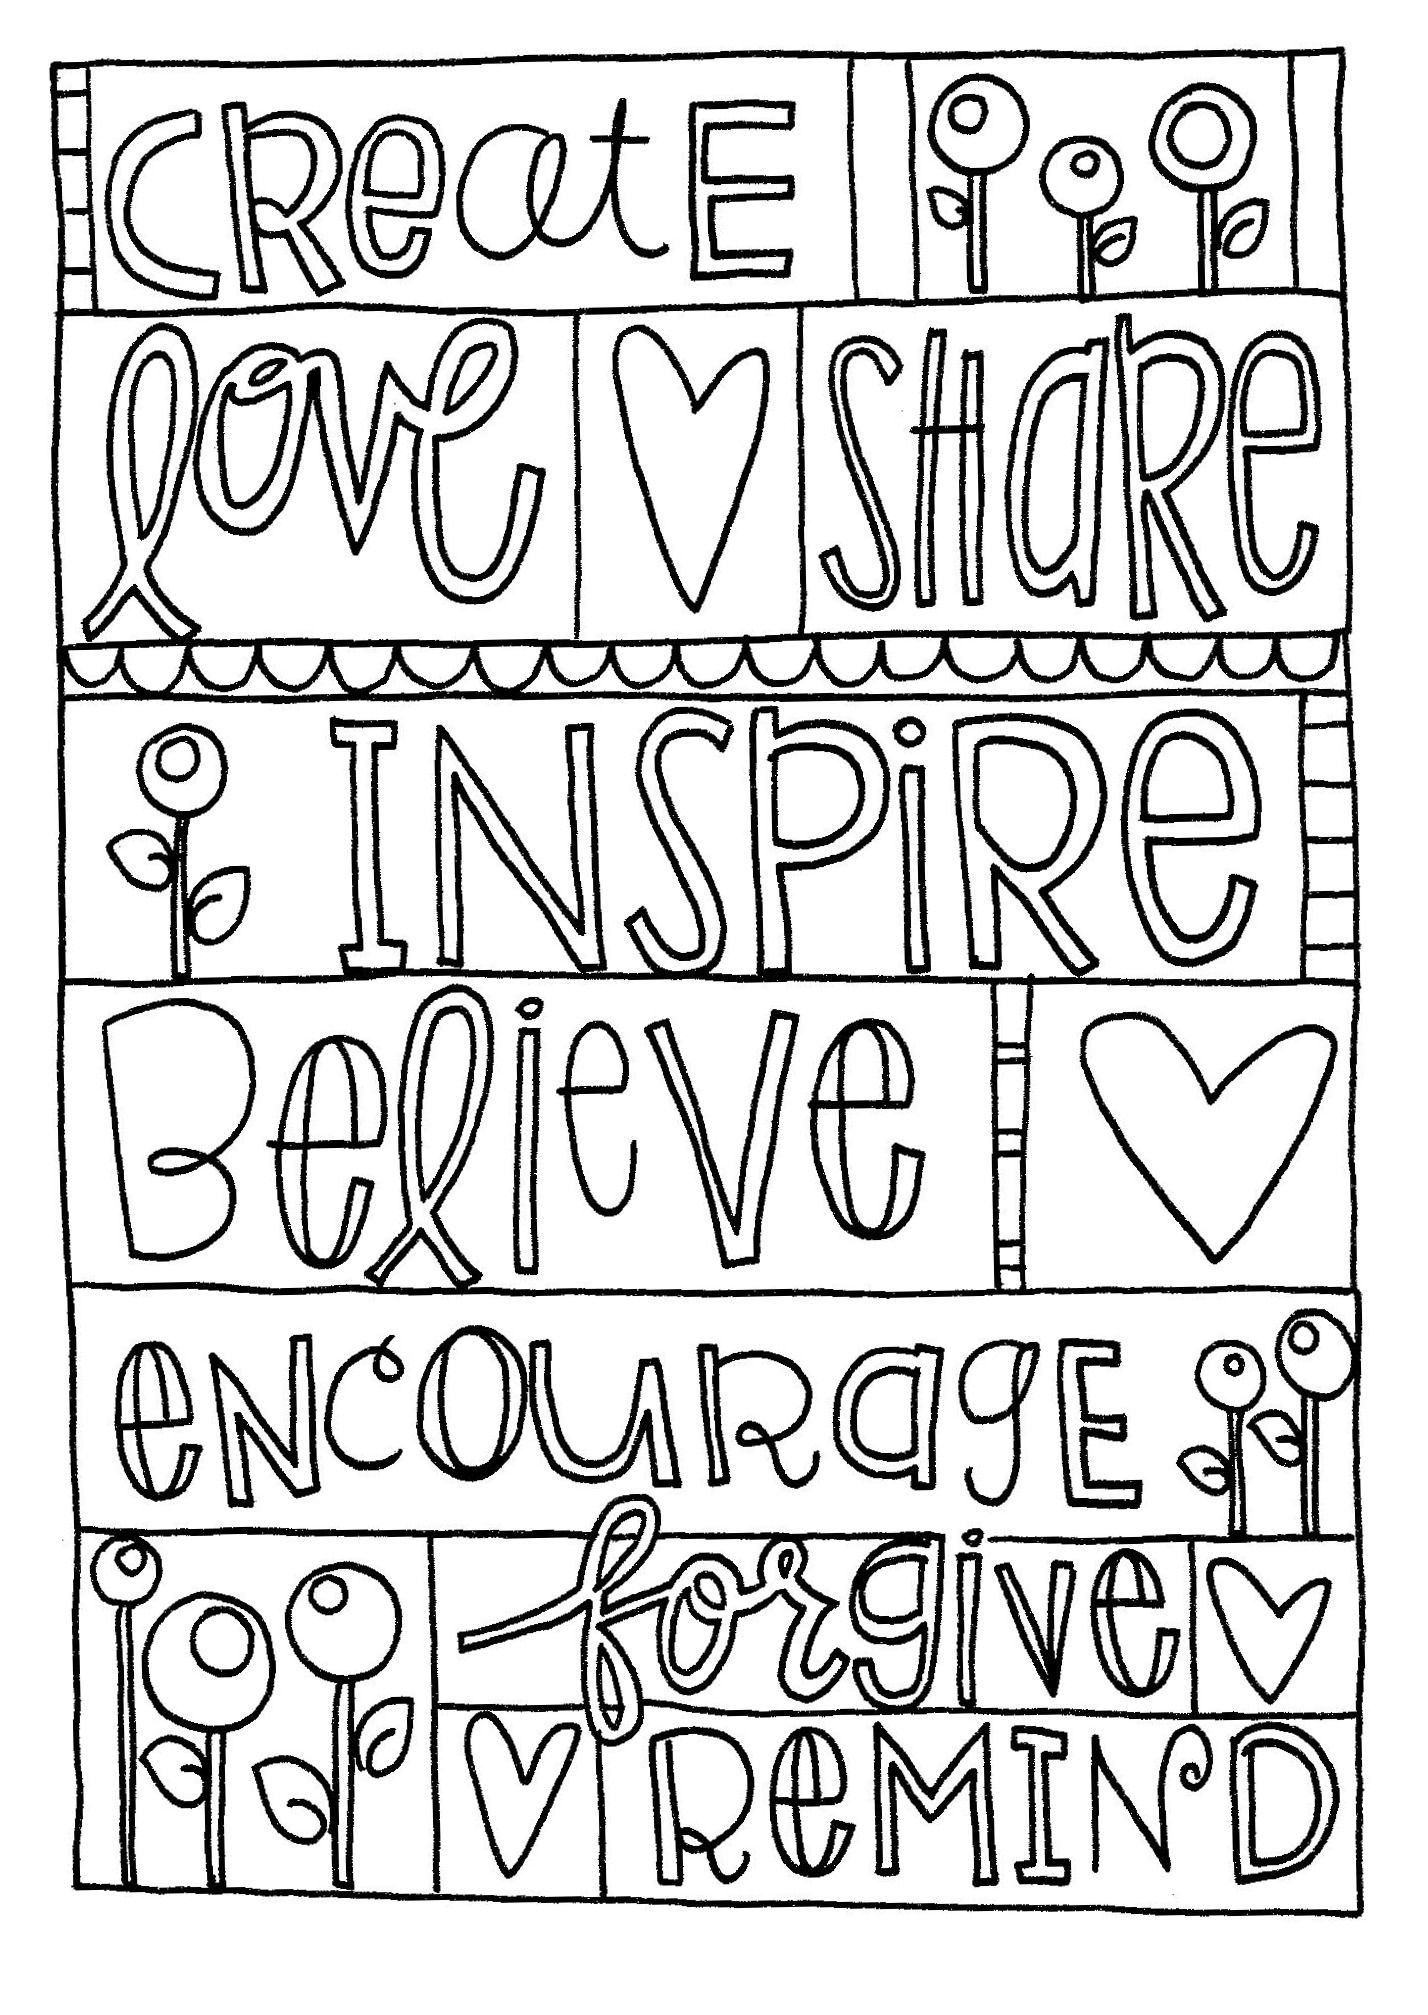 Love You Mom Coloring Pages At Getcolorings